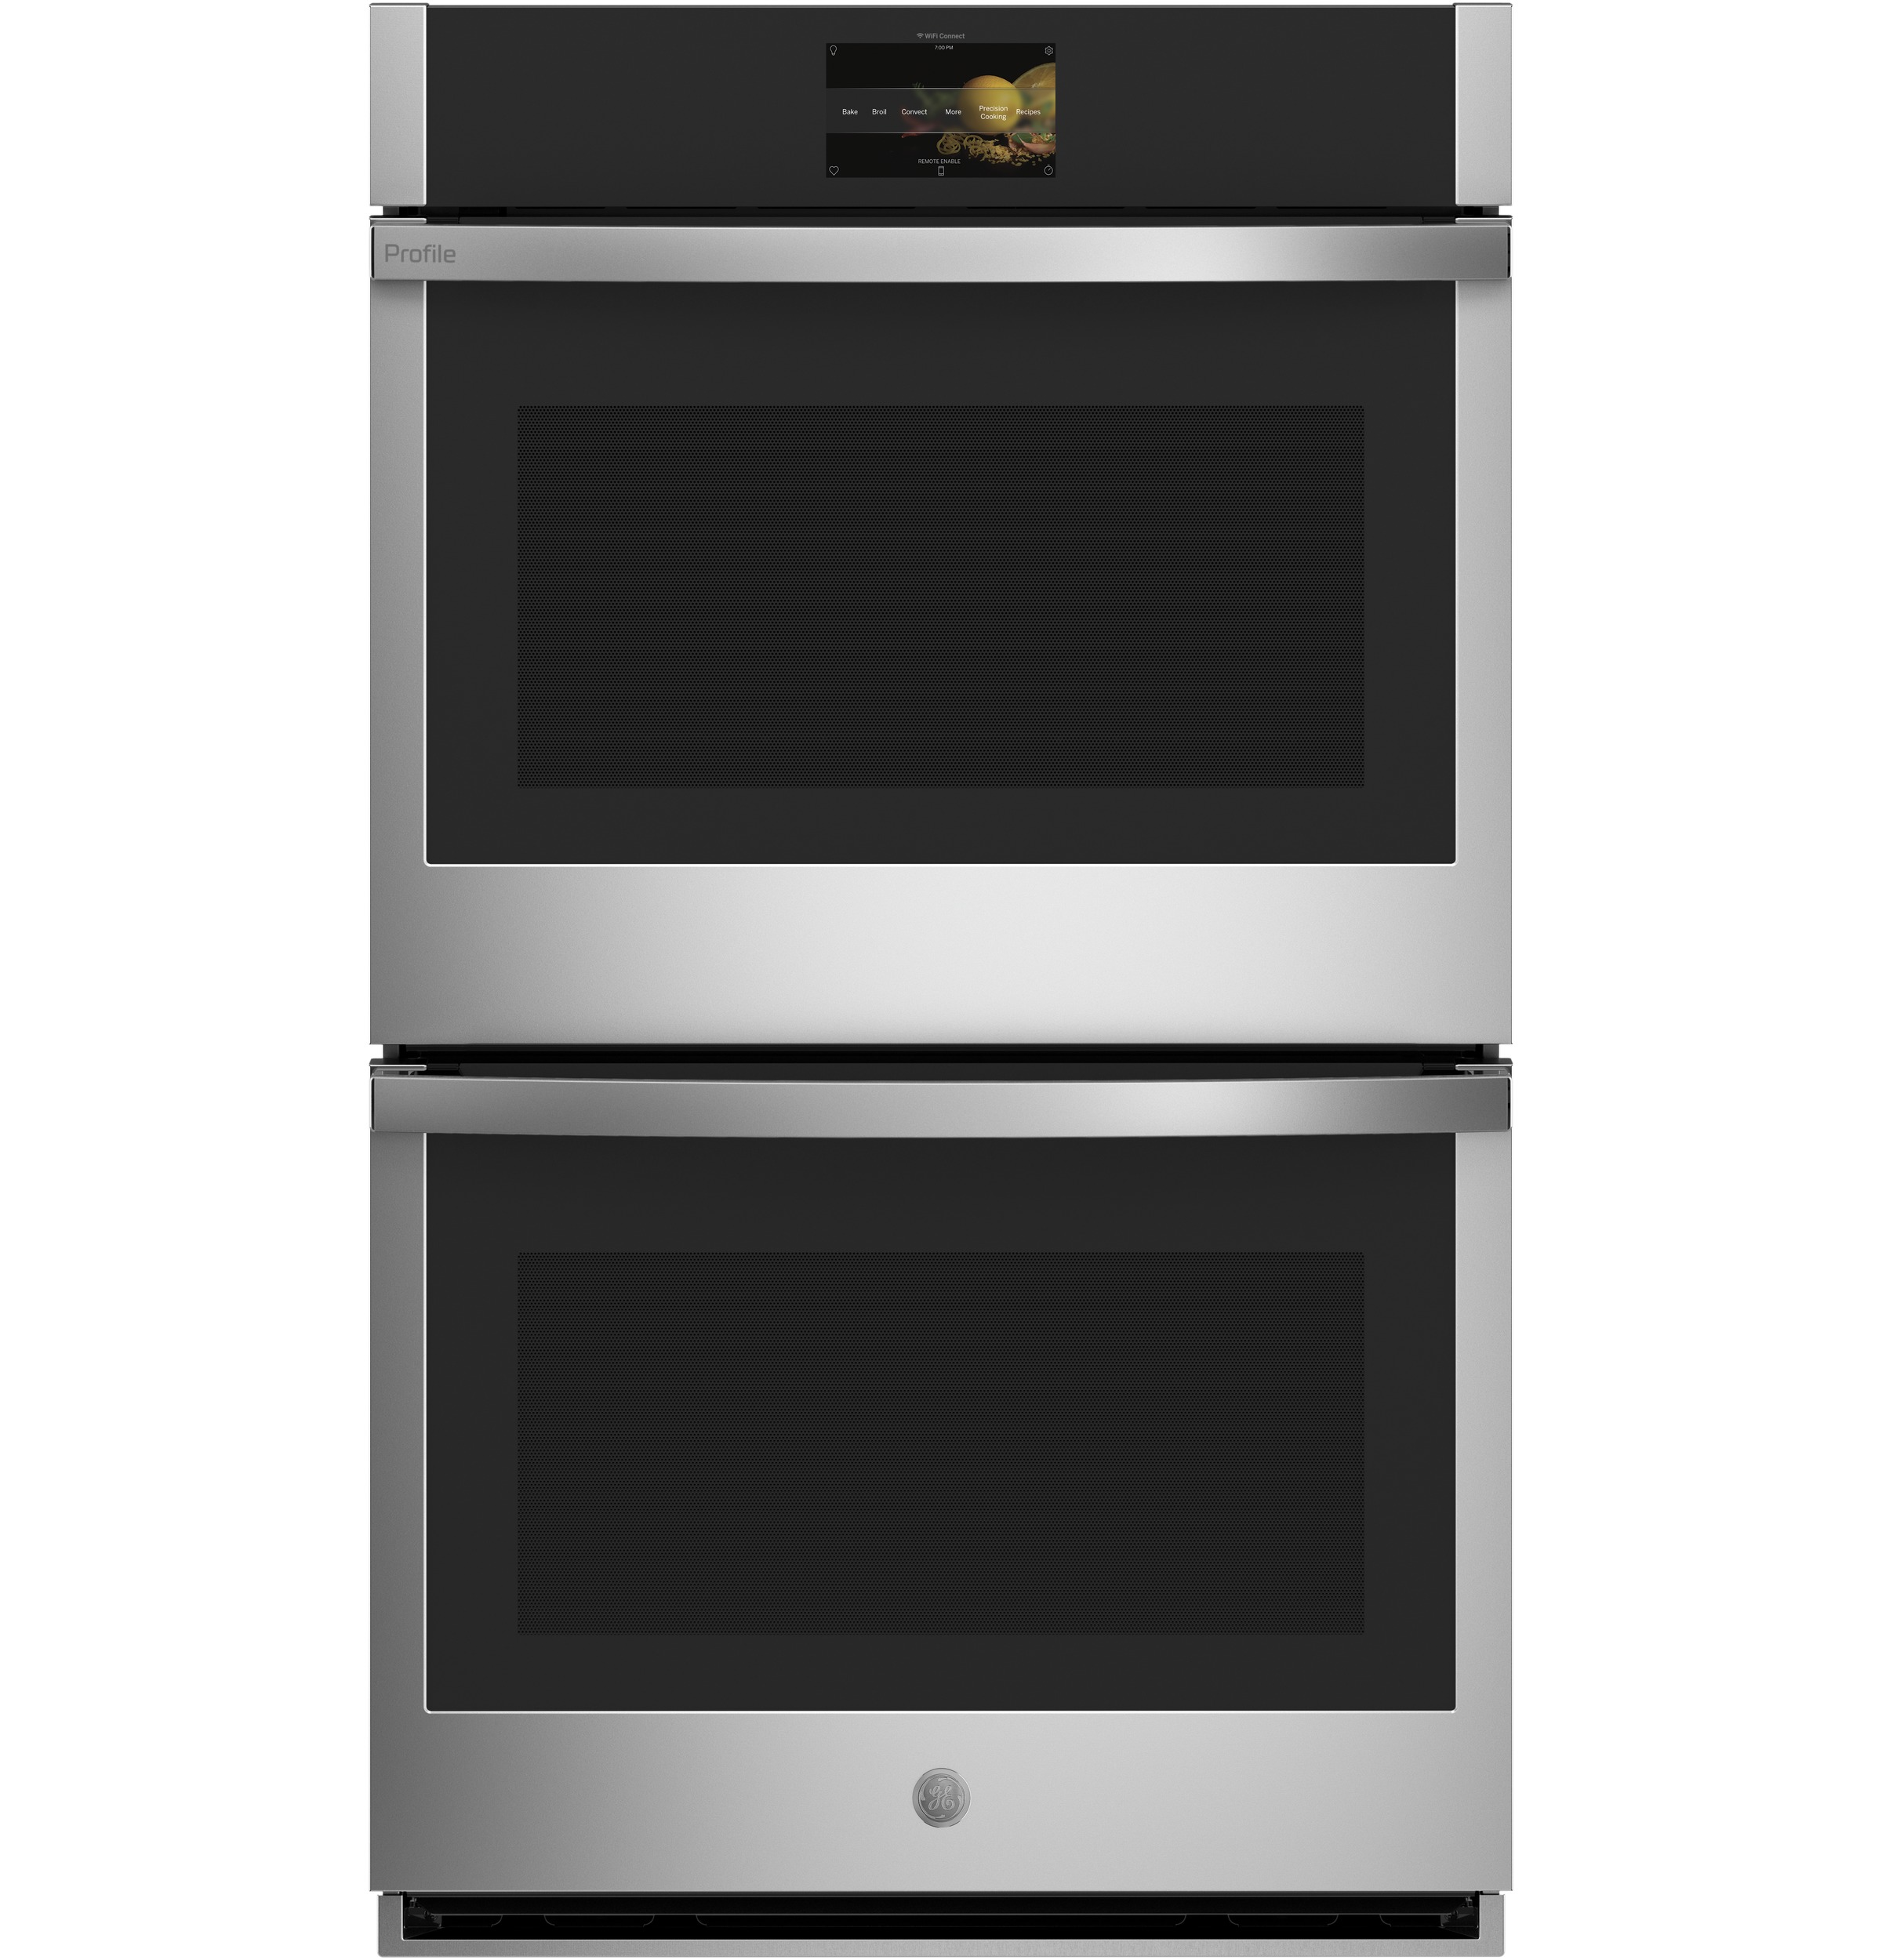 "GE Profile GE Profile™ Series 30"" Built-In Convection Double Wall Oven"